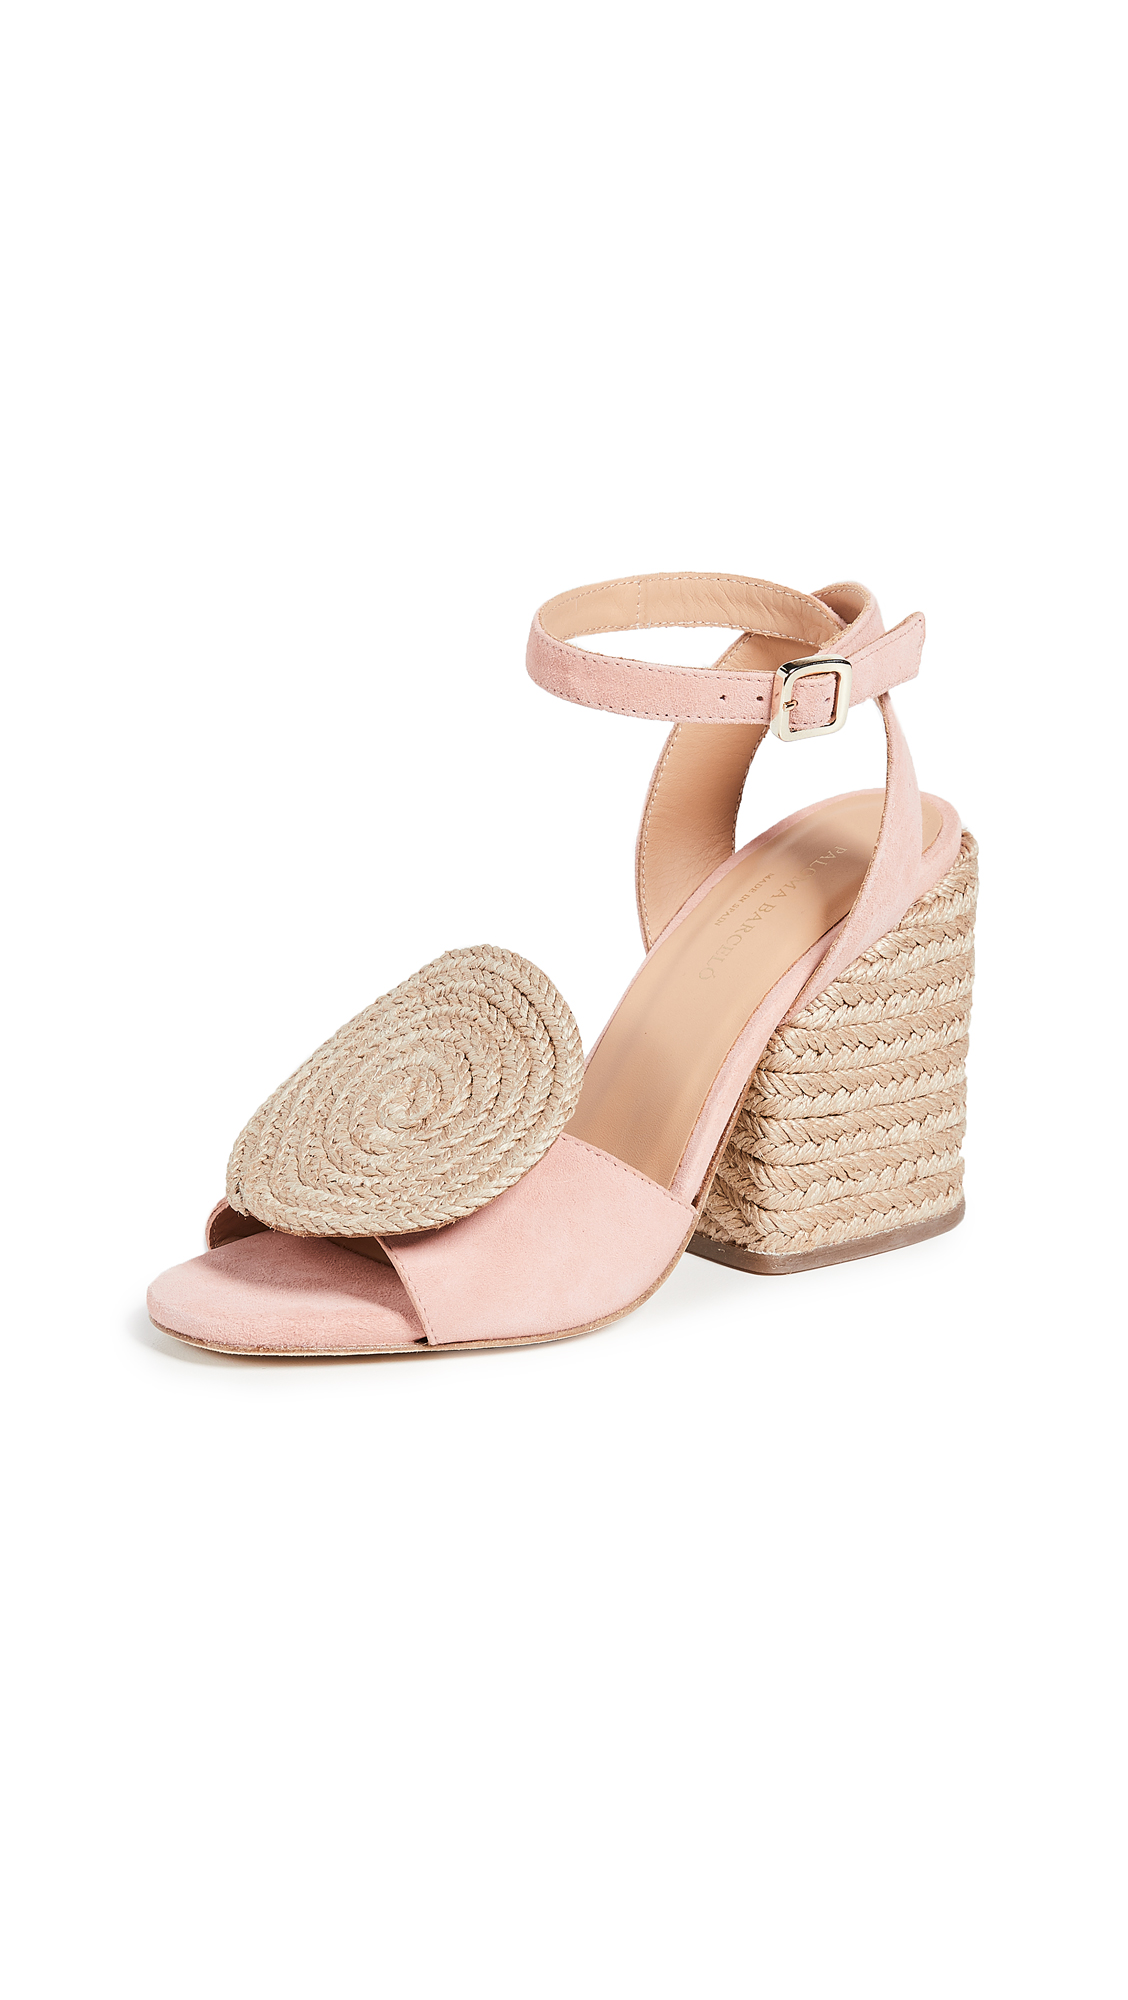 Paloma Barcelo Emi Circle Espadrille Sandals - Pink